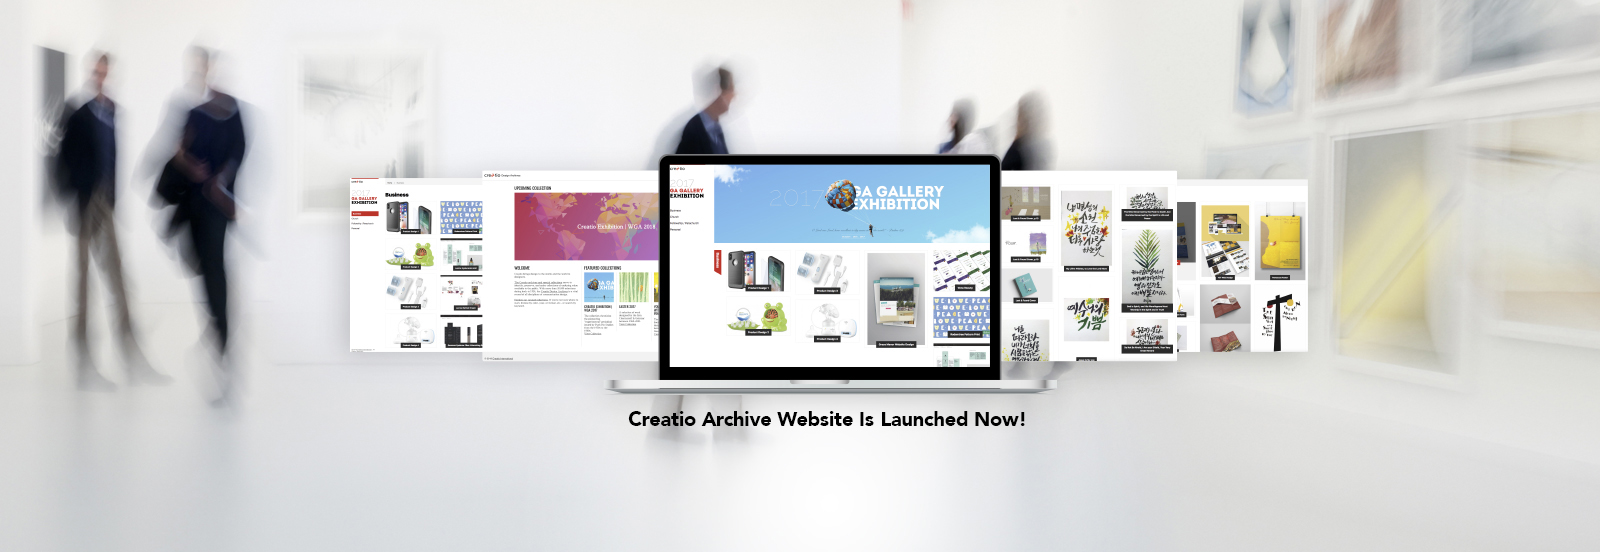 Creatio Archive Website Is Launched Now!